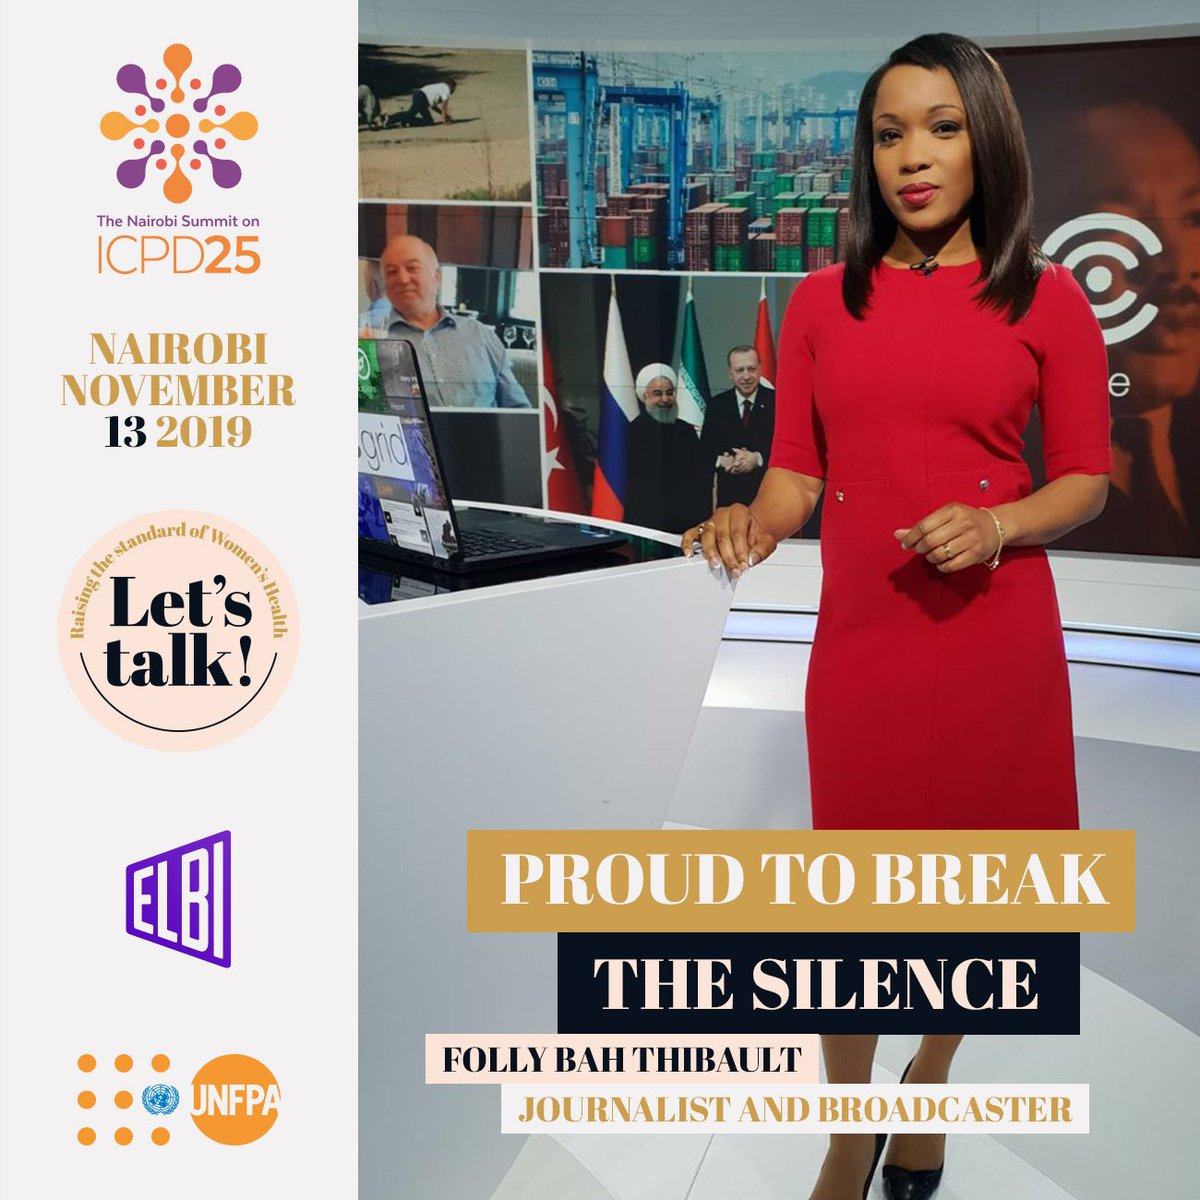 Let's kick things off with our #LetsTalk moderator, the journalist and presenter @follybah. Folly is Principal Presenter for @AJEnglish and will be chairing our session at the #NairobiSummit, bringing the best out of the fantastic panellists you're about to meet... We can't wait! https://t.co/hlkBIw5Dy1